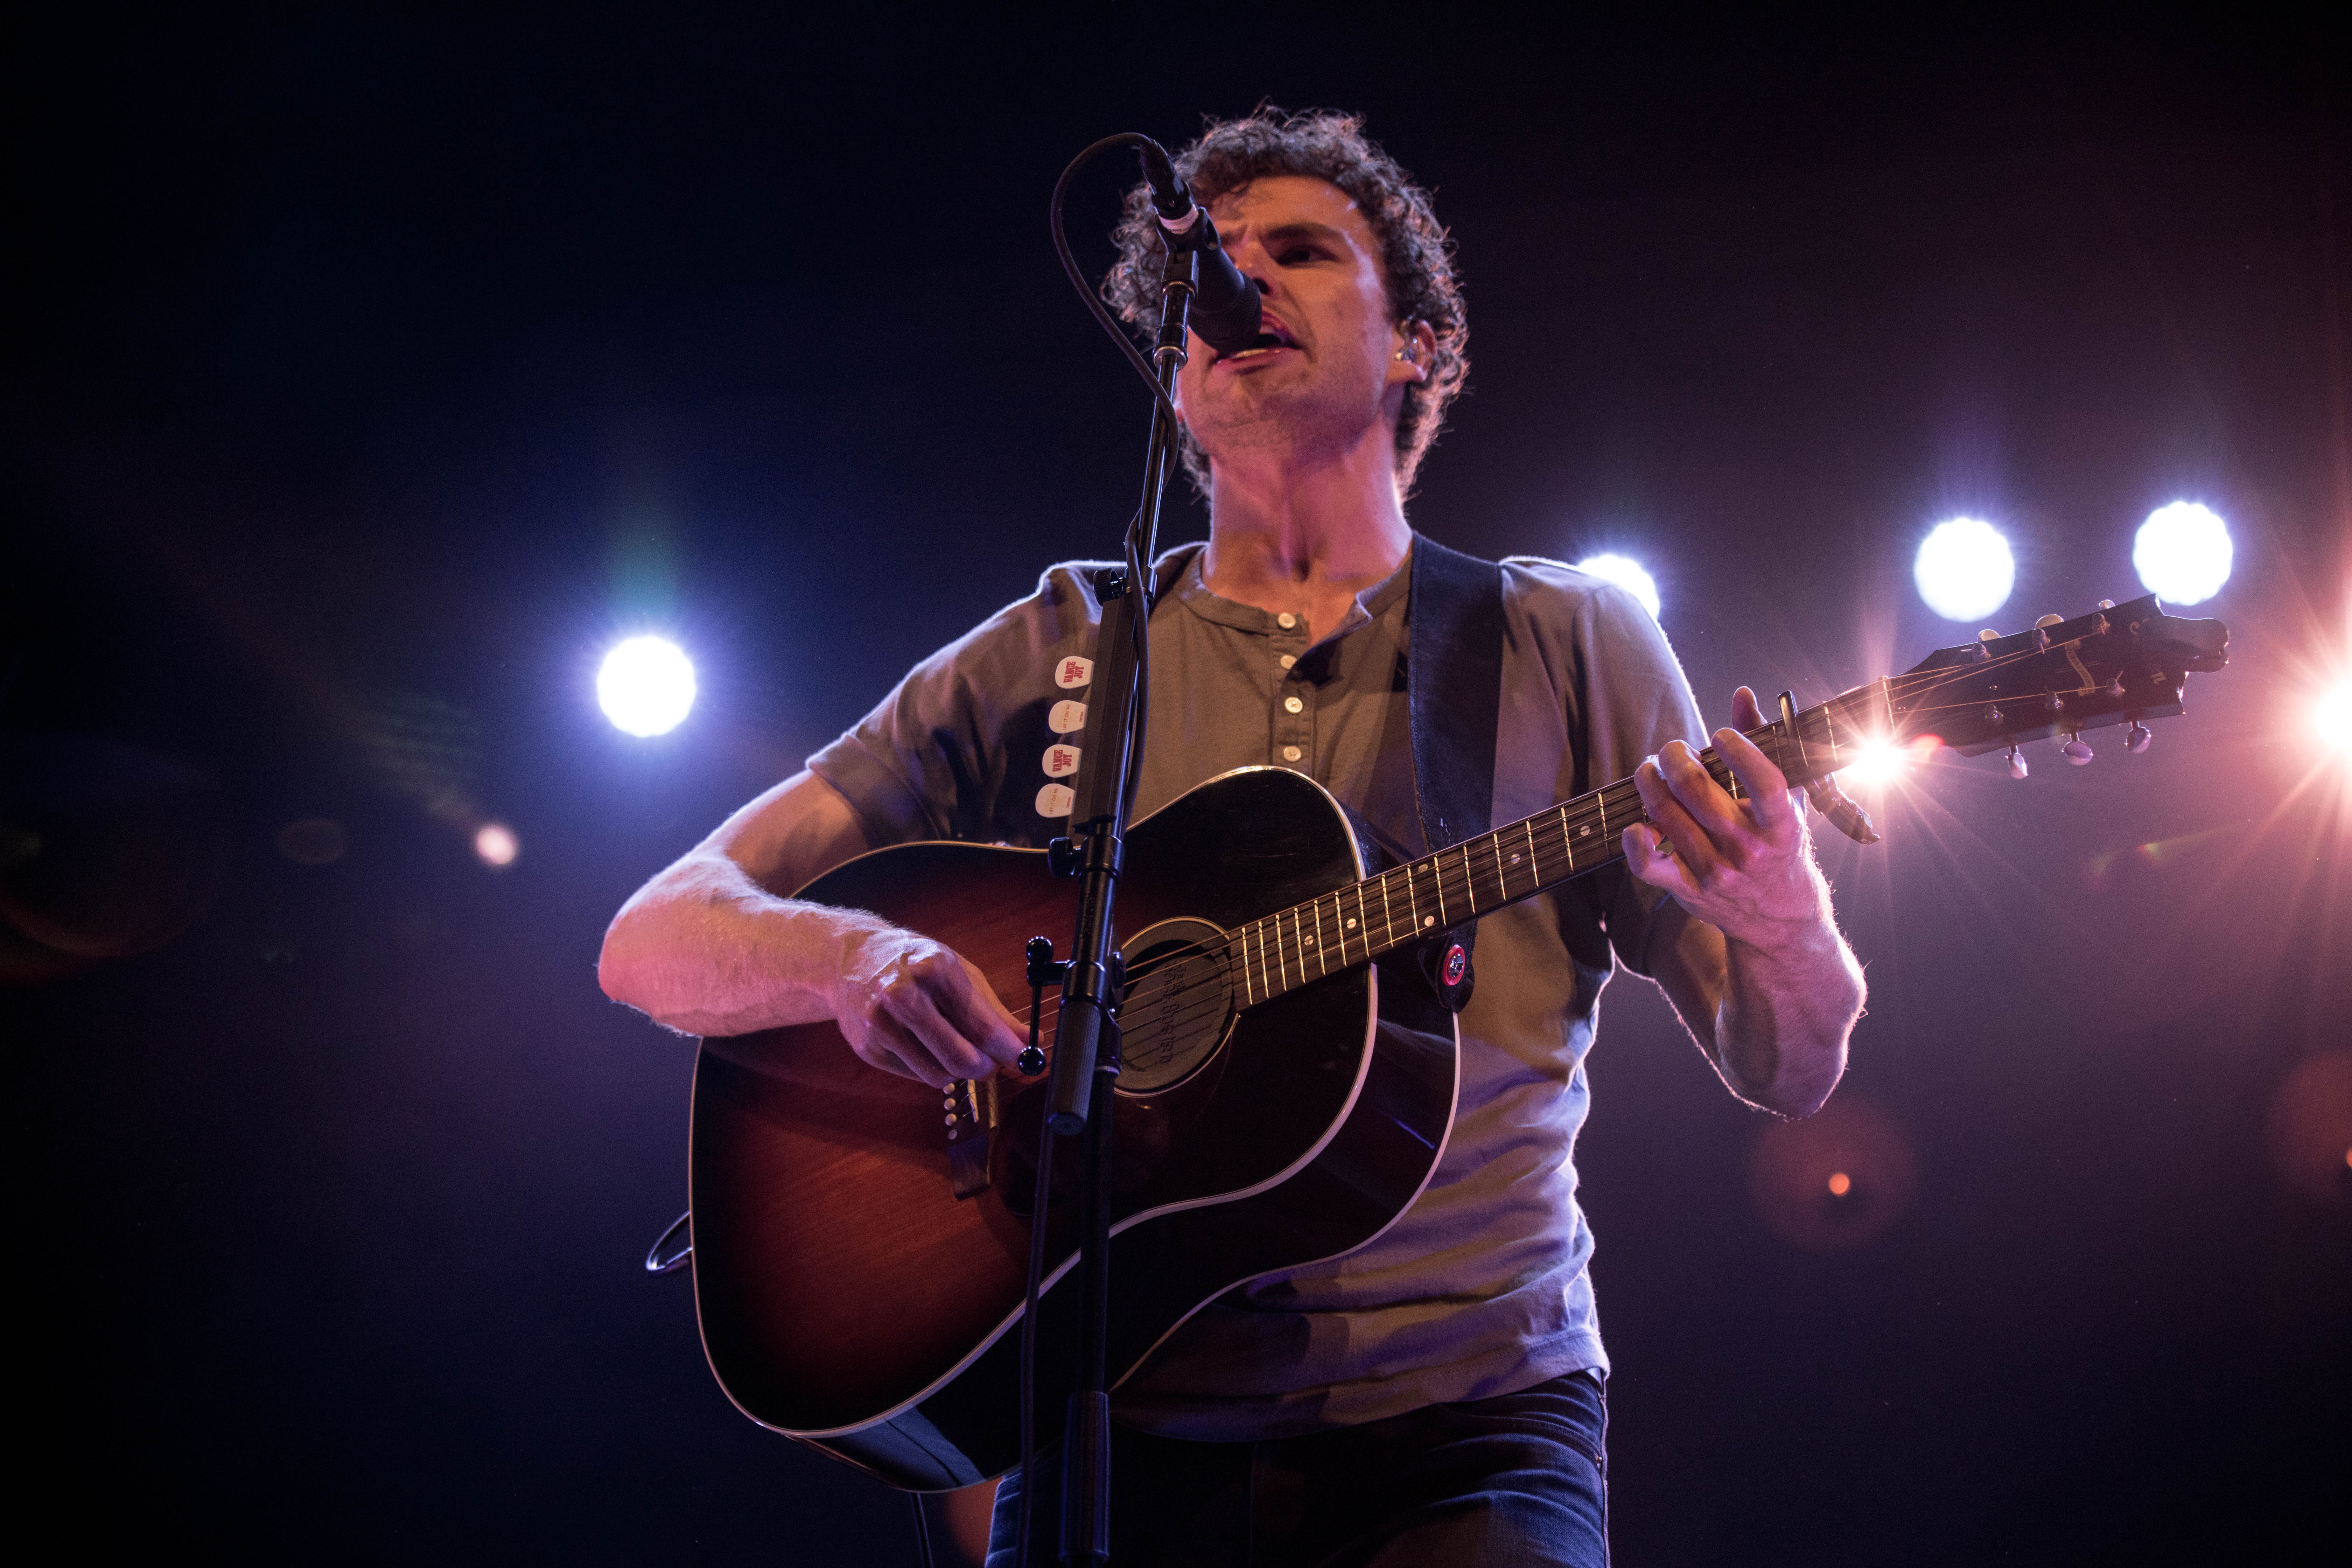 vance joy live review sydney photo credit statler willand savage thrills savagethrills 7